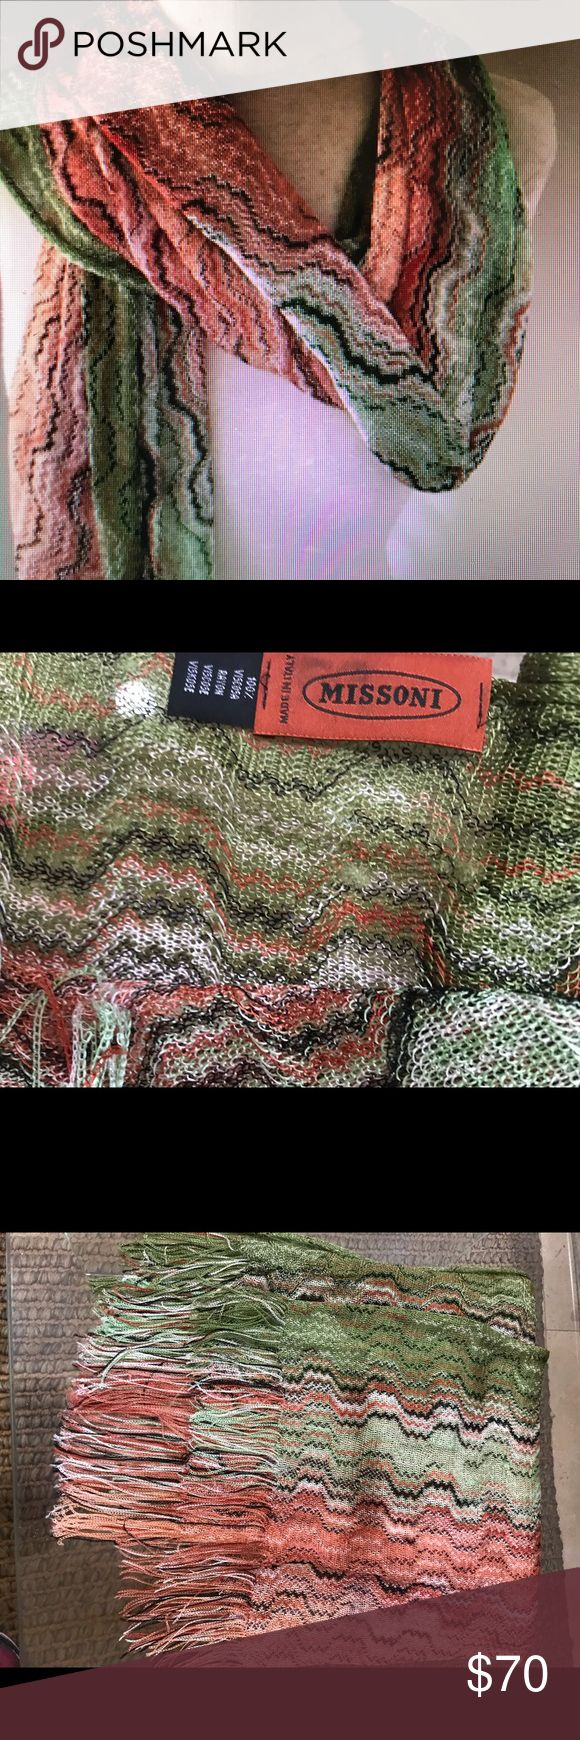 """Mission Scarf Missoni Multi color zig zag scarf. Made in Italy signature classic zigzag scarf. Can be worn as a scarf or a wrap. Scarf measures 82"""" x 30"""". Has a few snags. Like new, Gently worn. Missoni Accessories Scarves & Wraps"""